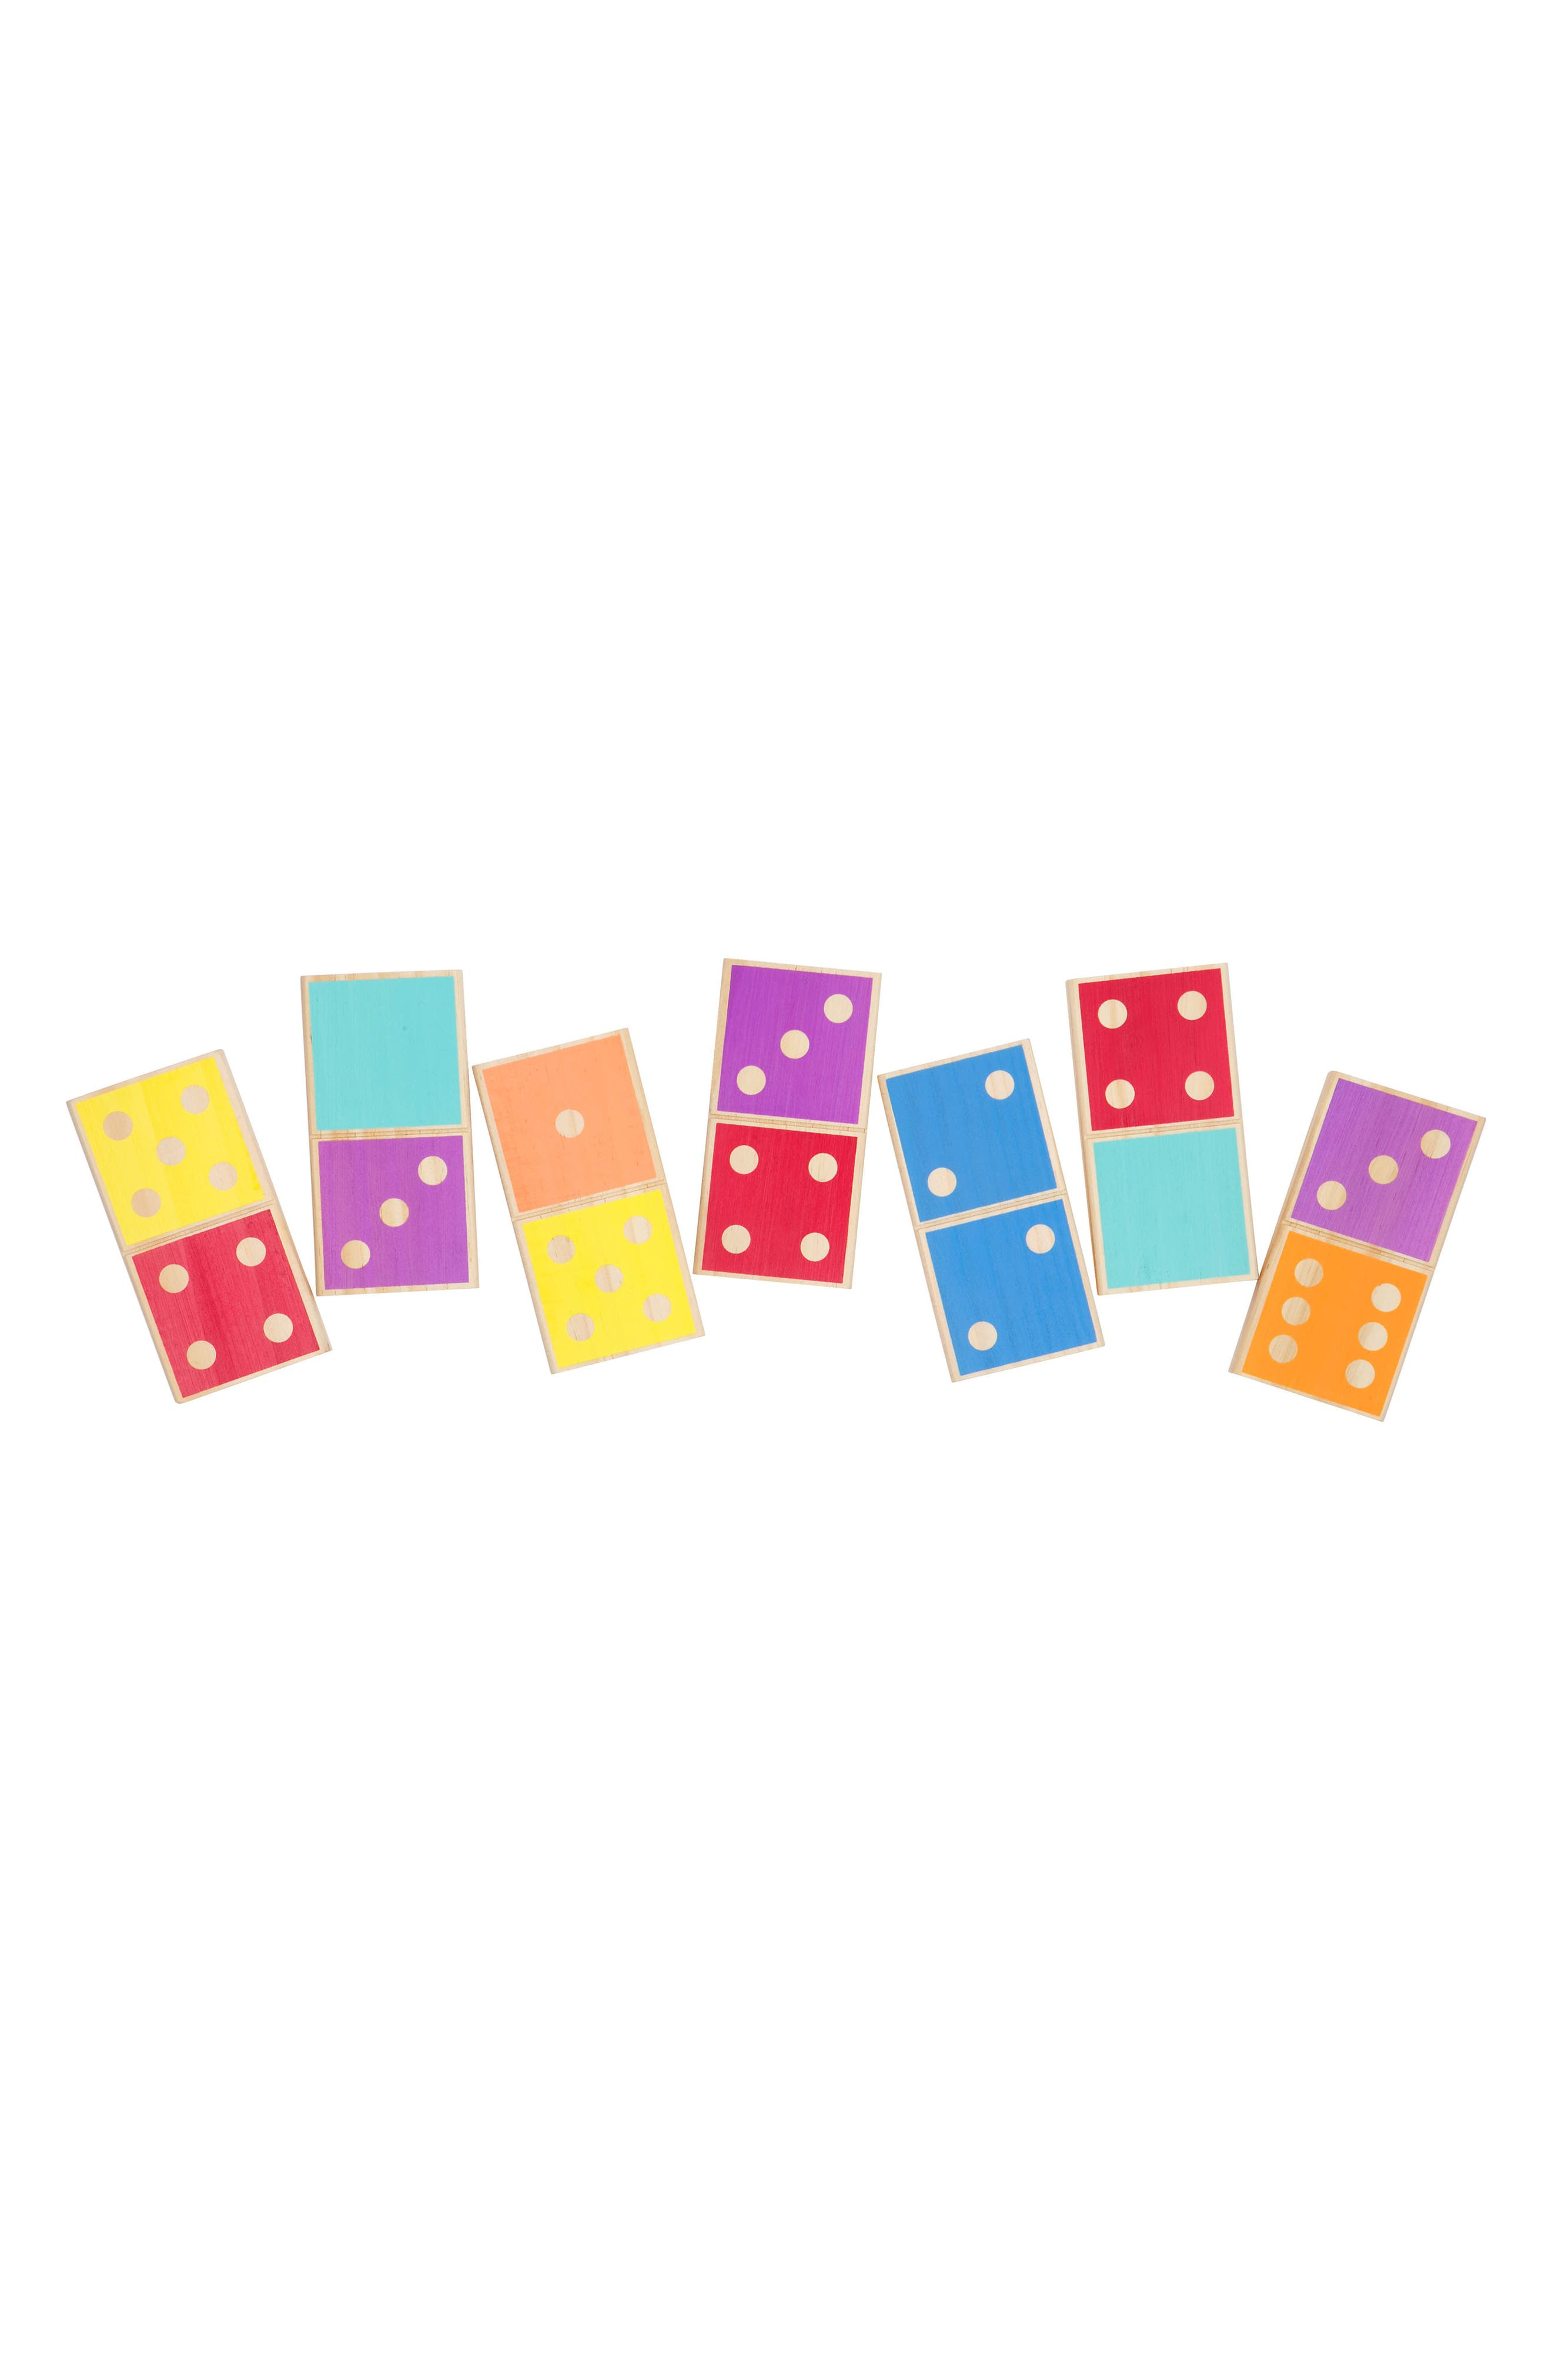 28-Piece Giant Dominos Game,                             Alternate thumbnail 2, color,                             250